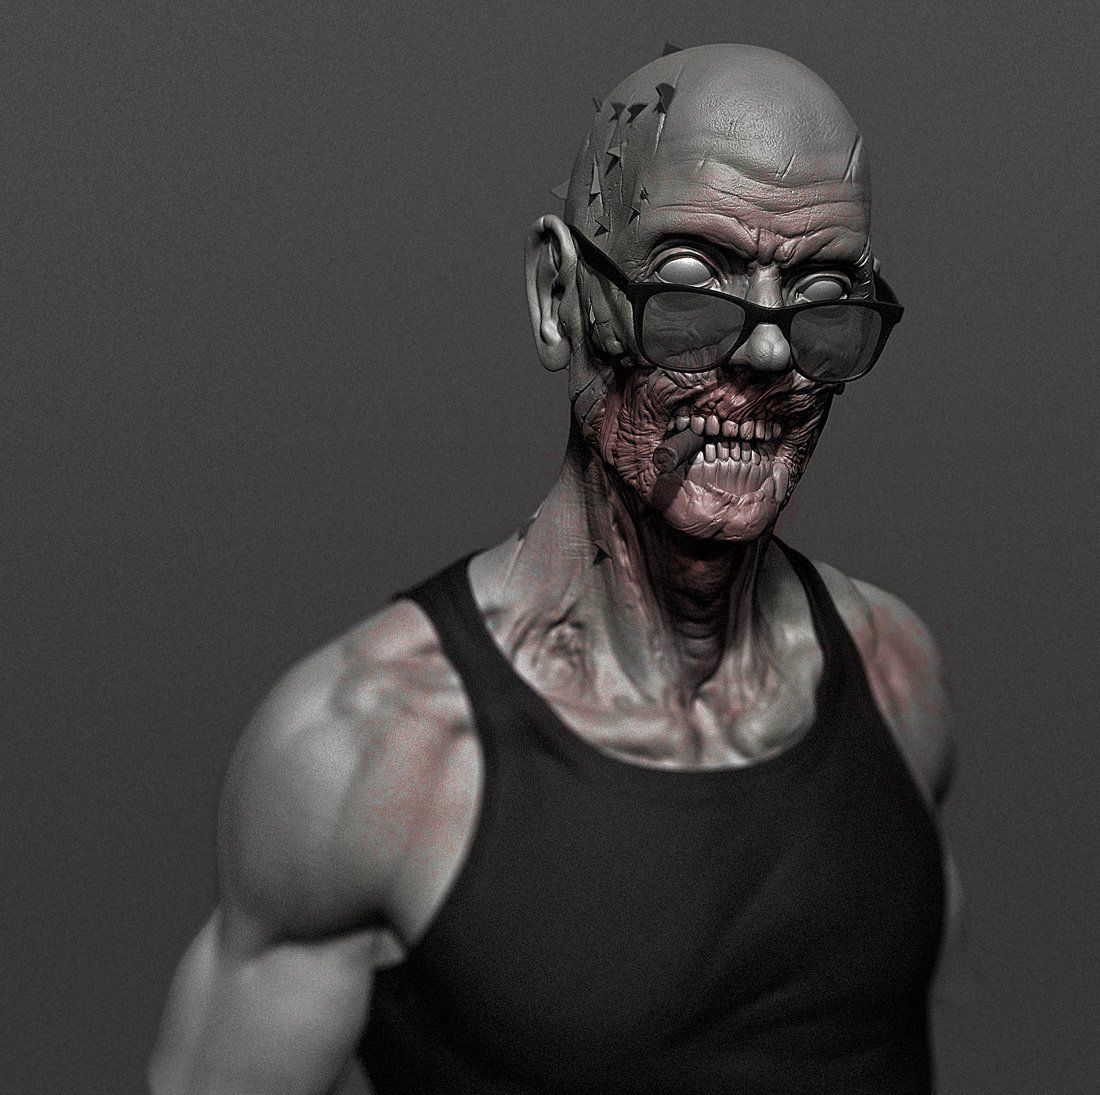 cool zombie 3d model in coins and badges 3dexport